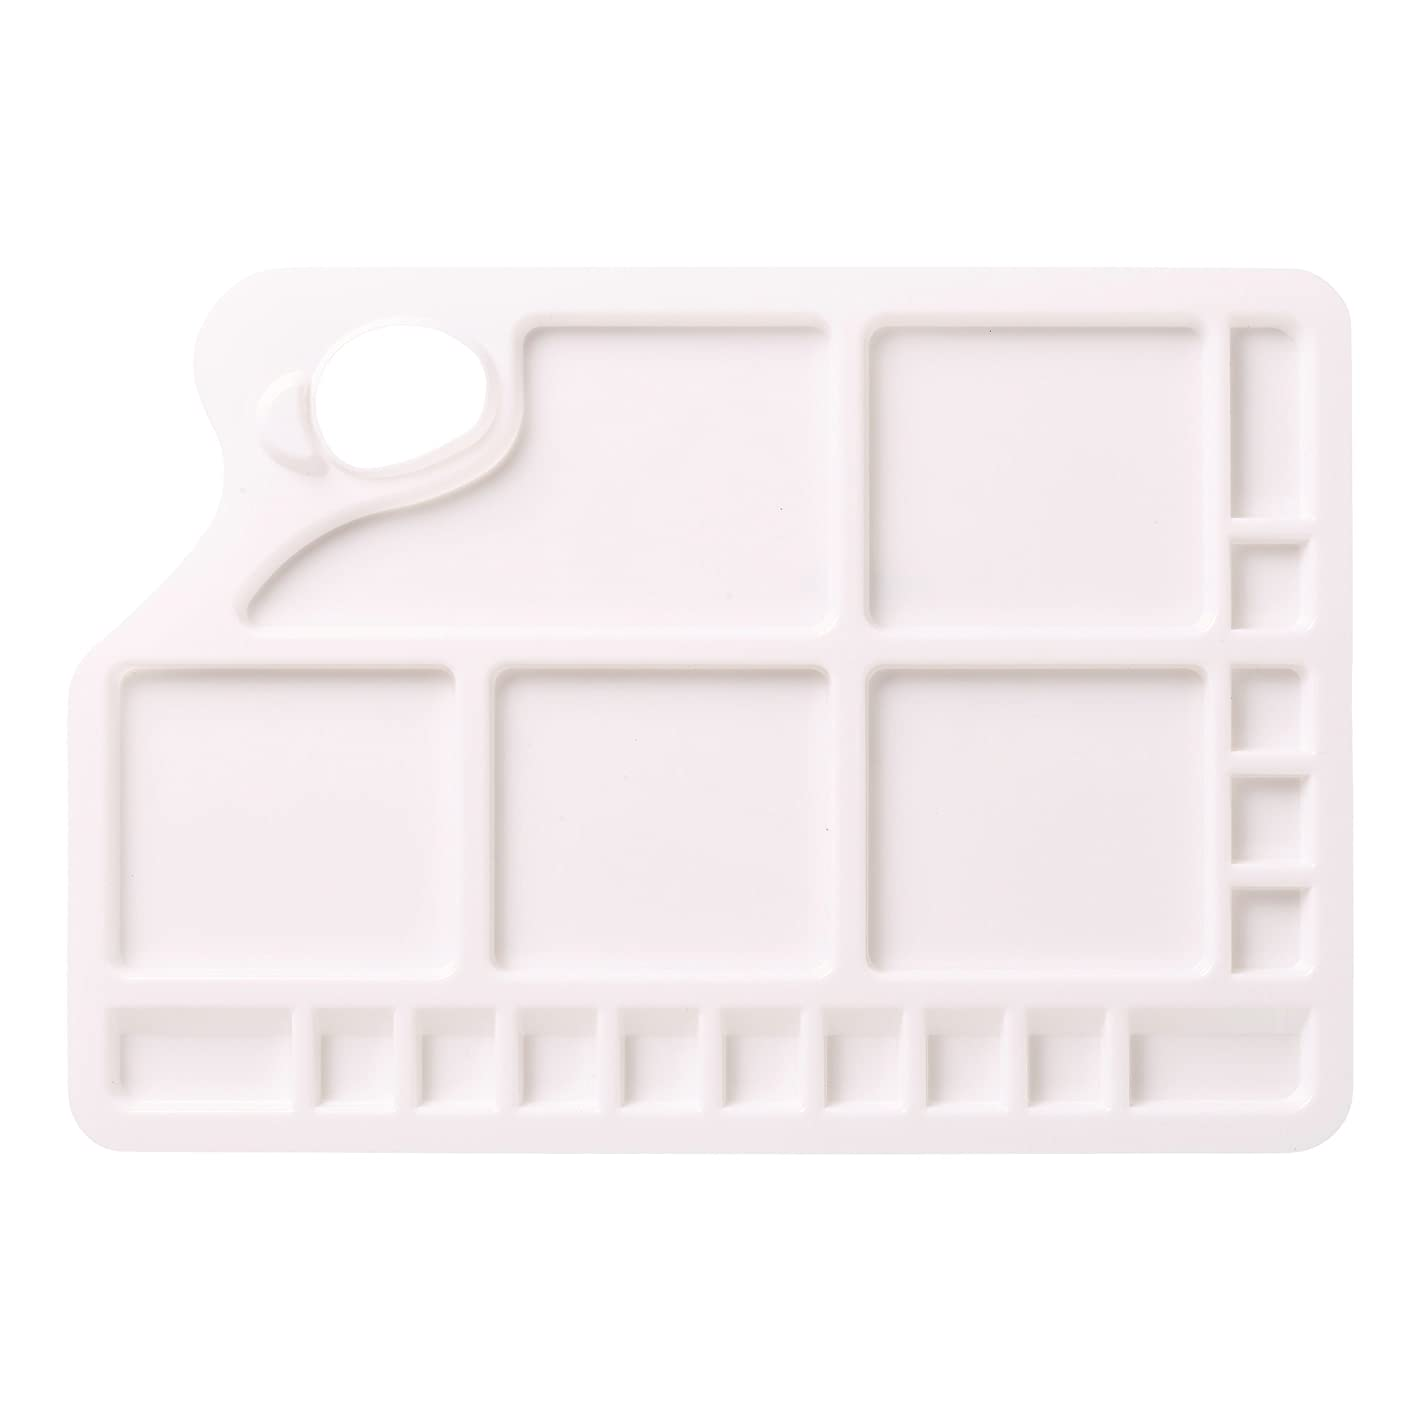 Winsor & Newton Reeves Large Rectangular Plastic Paint Palette